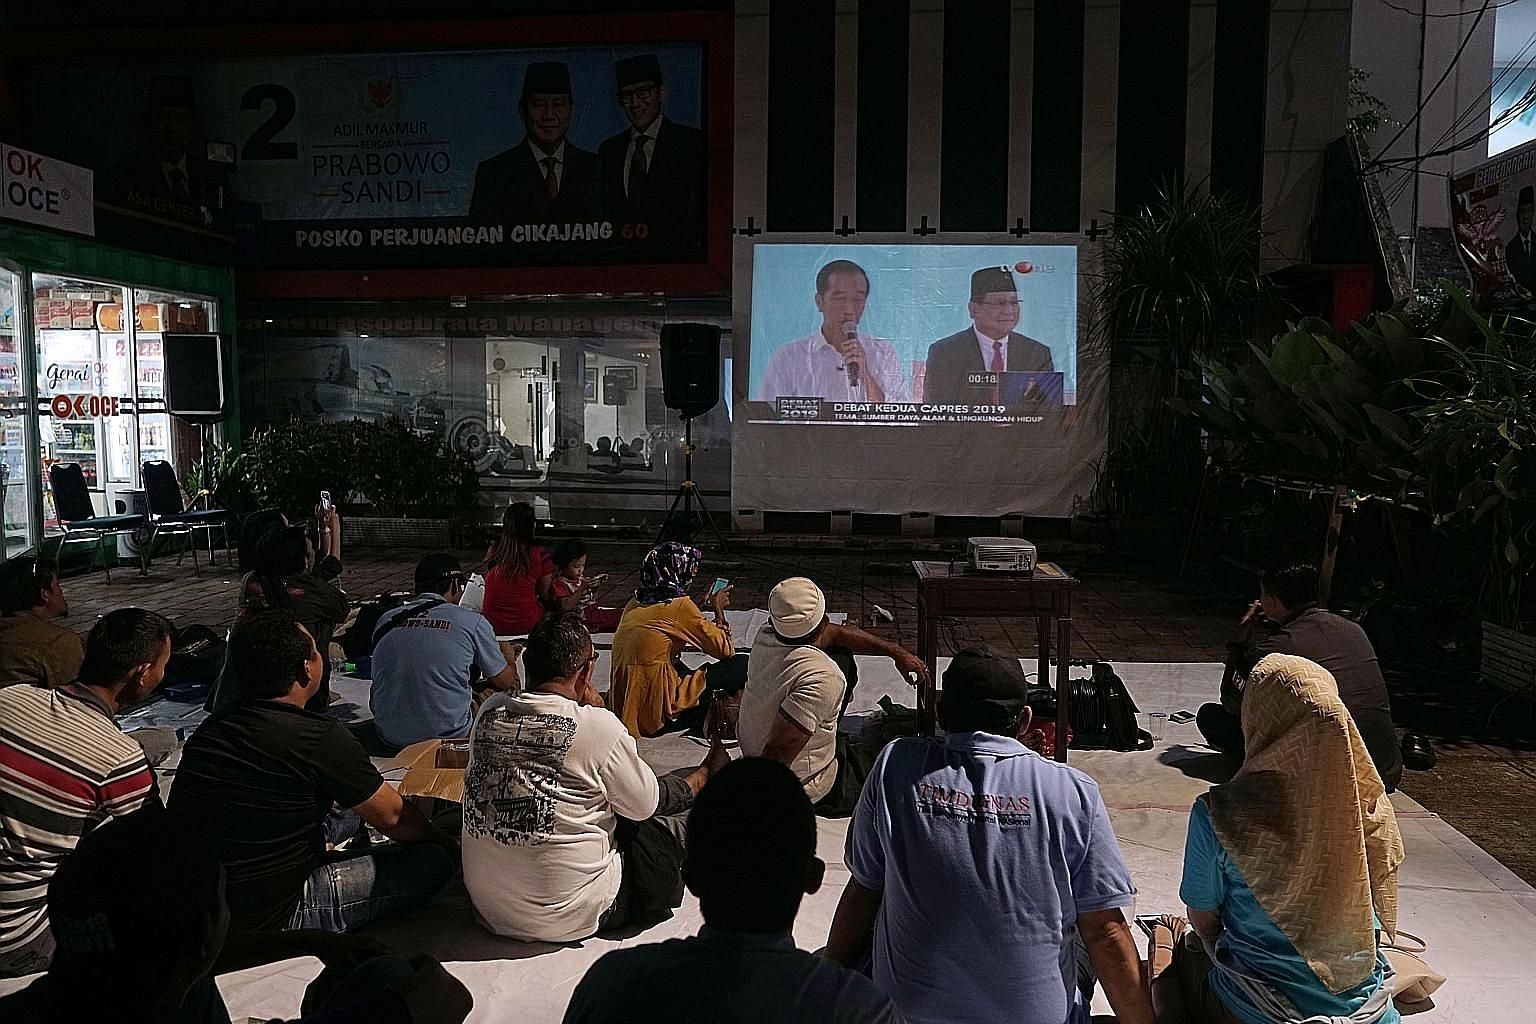 Indonesians watching the second presidential debate in Jakarta on Sunday. Indonesian President Joko Widodo and challenger Prabowo Subianto went head to head on issues ranging from the economy to the environment.